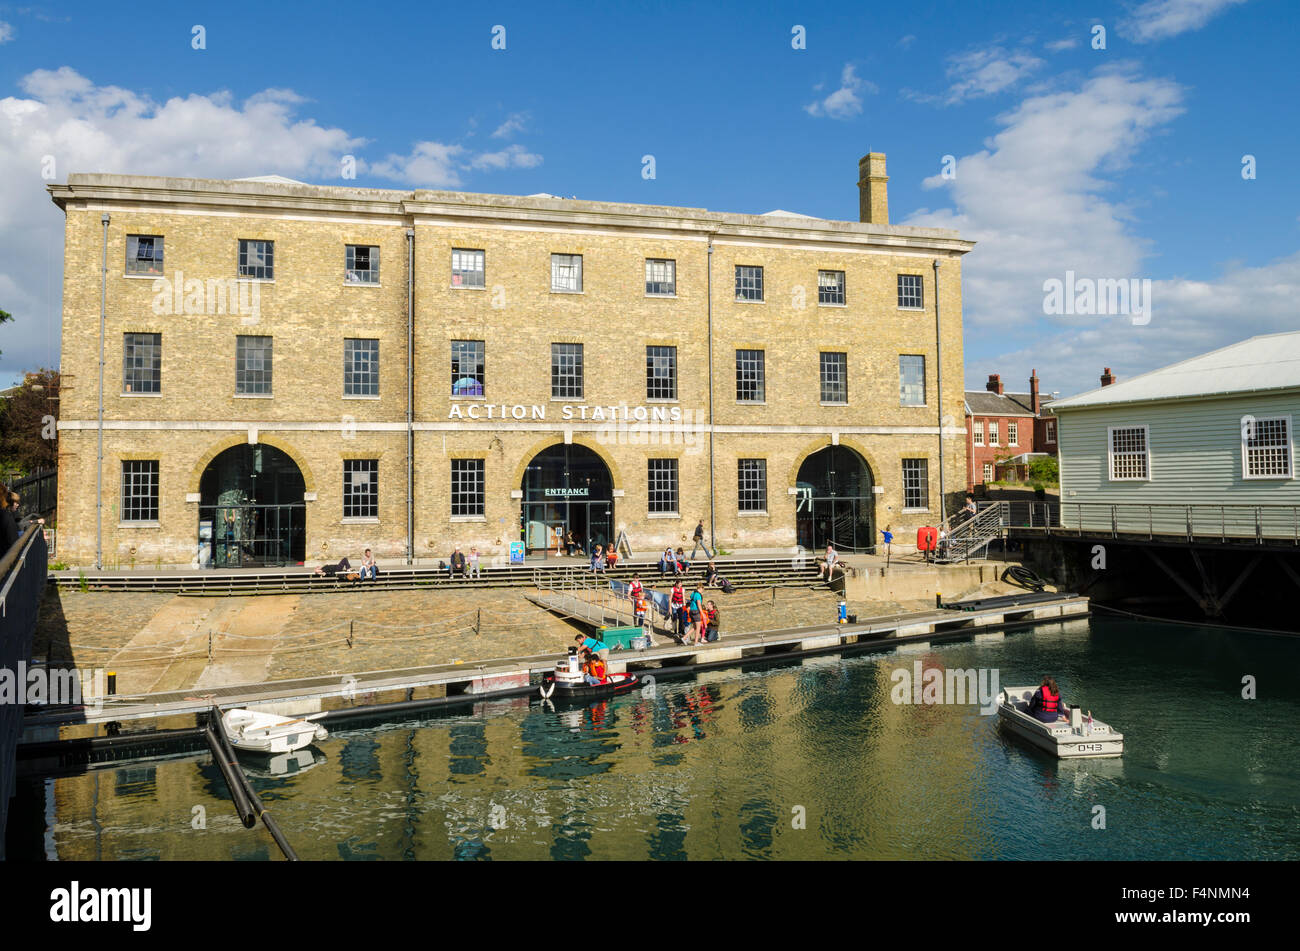 The Action Centre museum at Portsmouth Historic Dockyard, Hampshire, England. - Stock Image